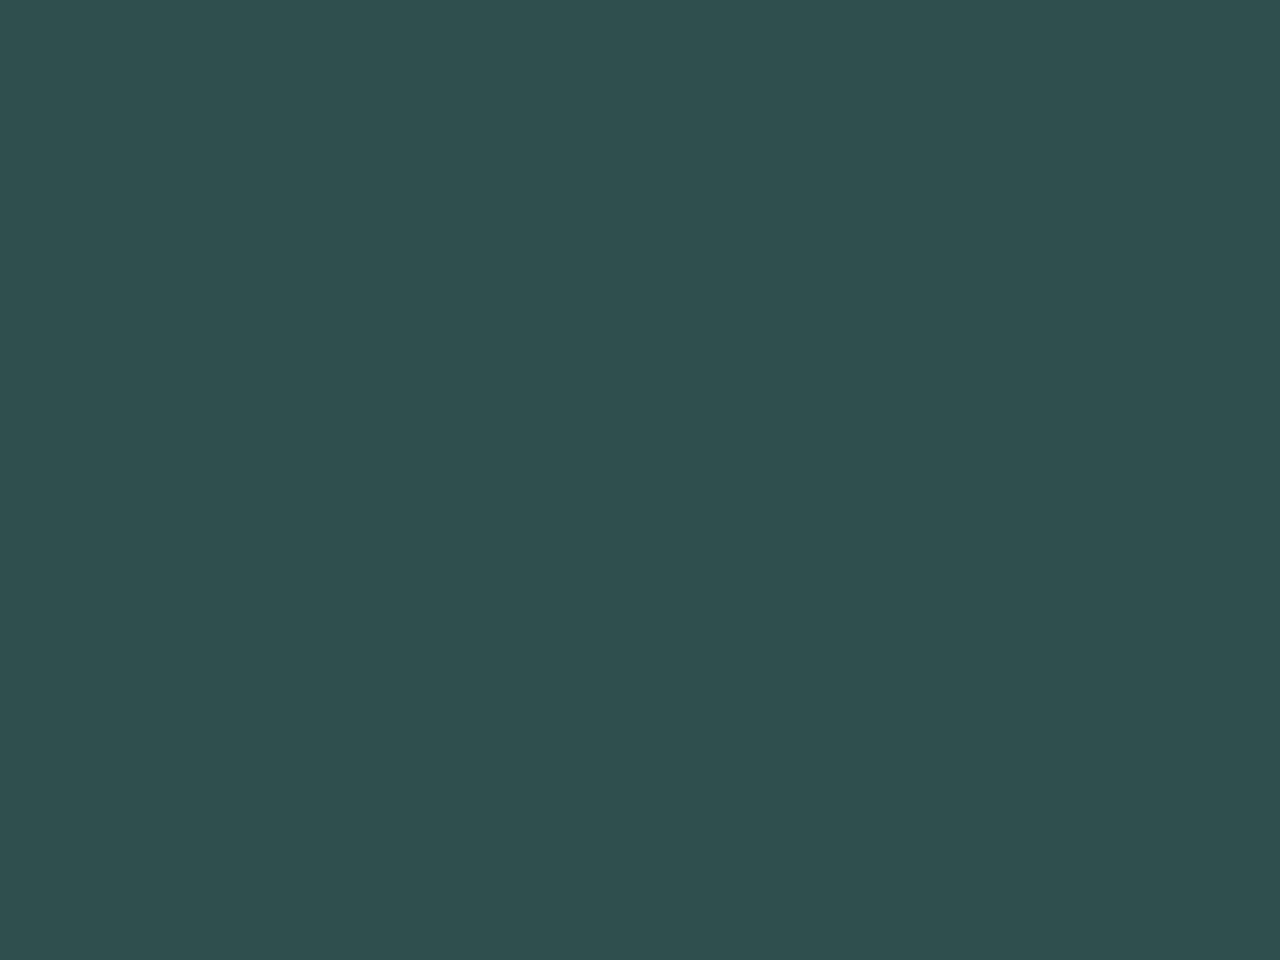 1280x960 Dark Slate Gray Solid Color Background